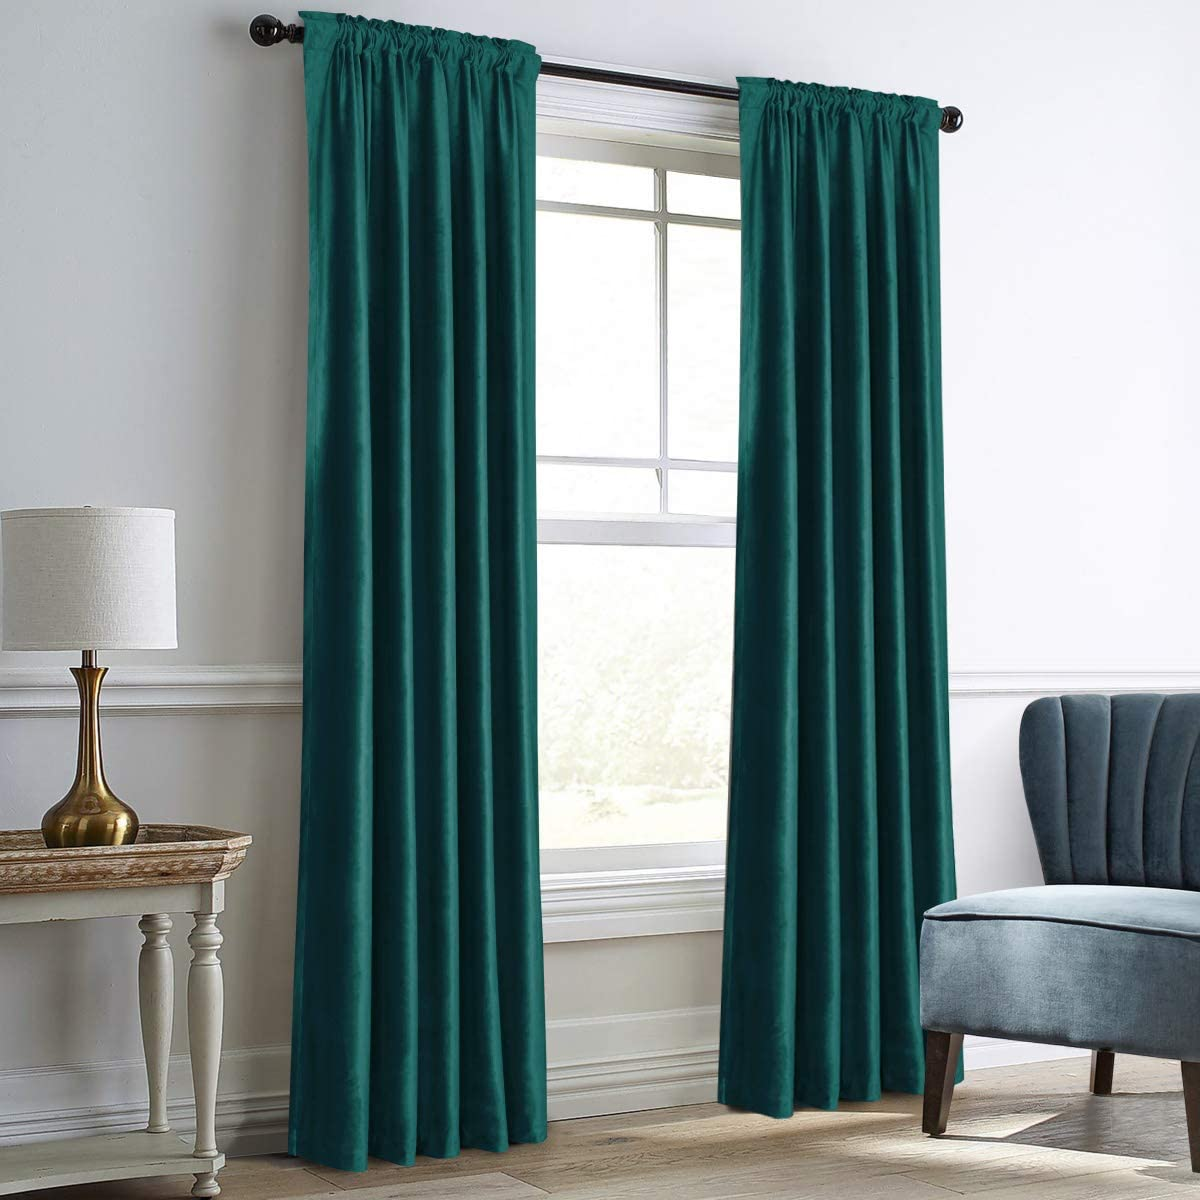 """Dreaming Casa Teal Green Velvet Curtains for Living Room Thermal Insulated Rod Pocket Back Tab Window Curtain for Bedroom 2 Panels 52"""" W x 84"""" L 52W x 84L Teal Green"""